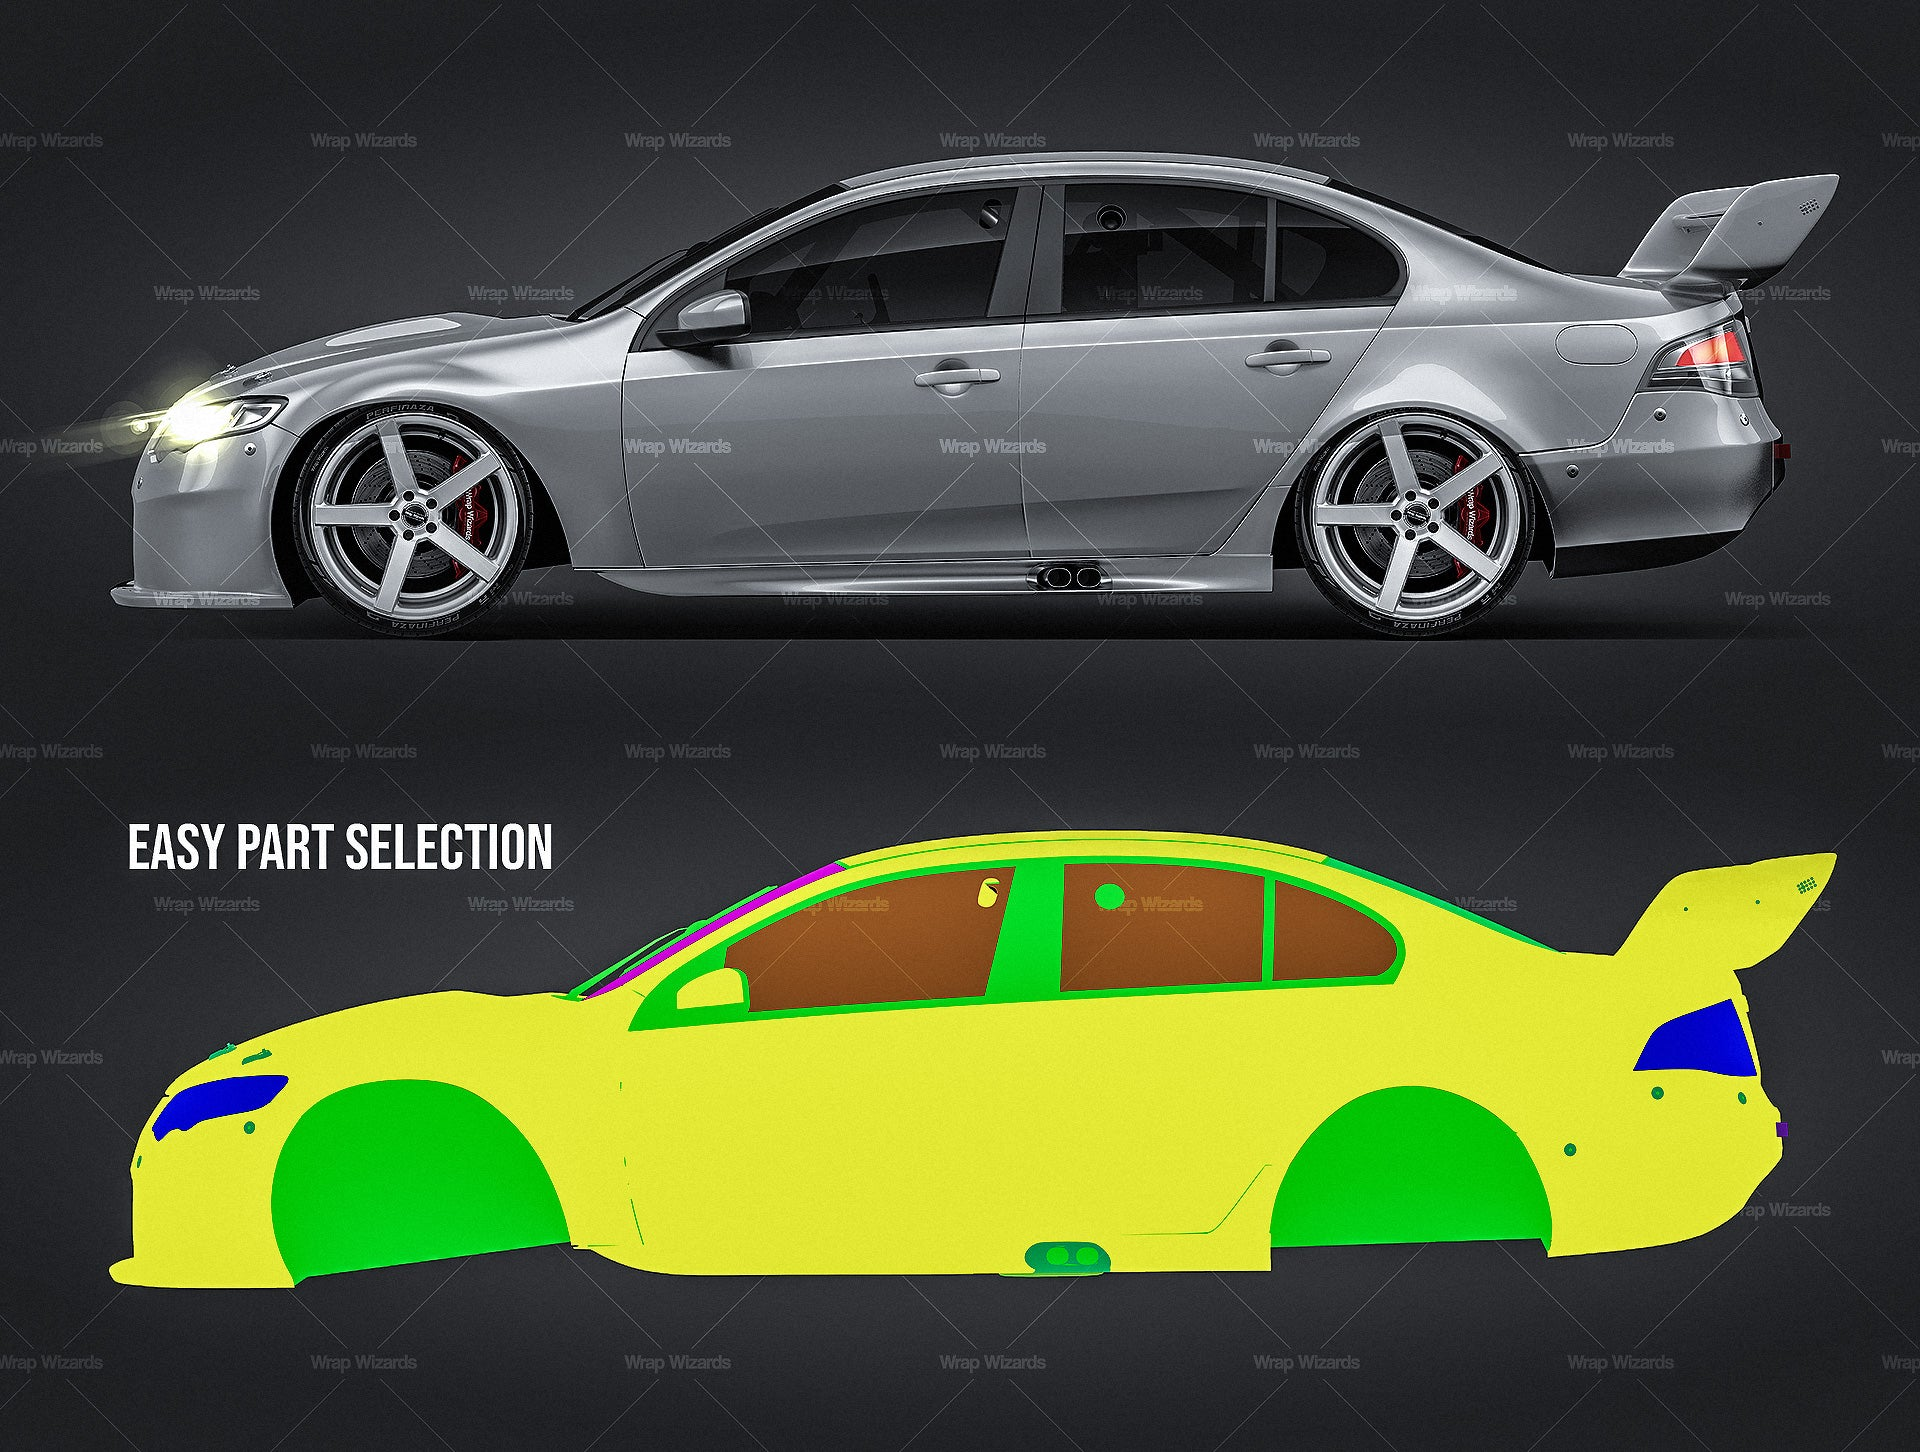 Ford Falcon FG V8 Supercar 2014 glossy finish - all sides Car Mockup Template.psd